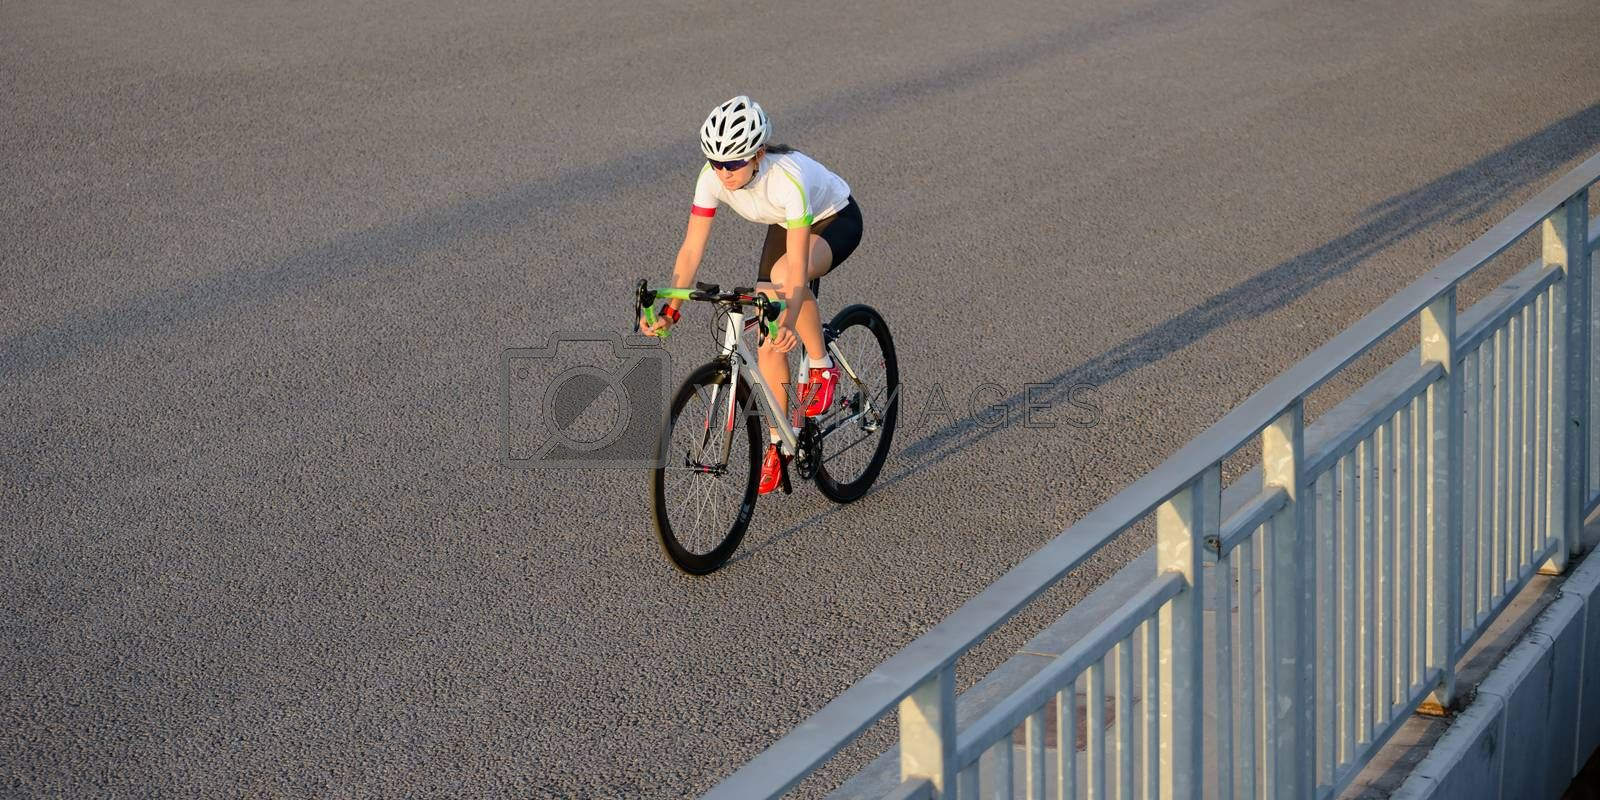 Young Woman Riding Road Bicycle on the Bridge in the City at Sunset. Healthy Lifestyle and Sport Concept. by maxpro